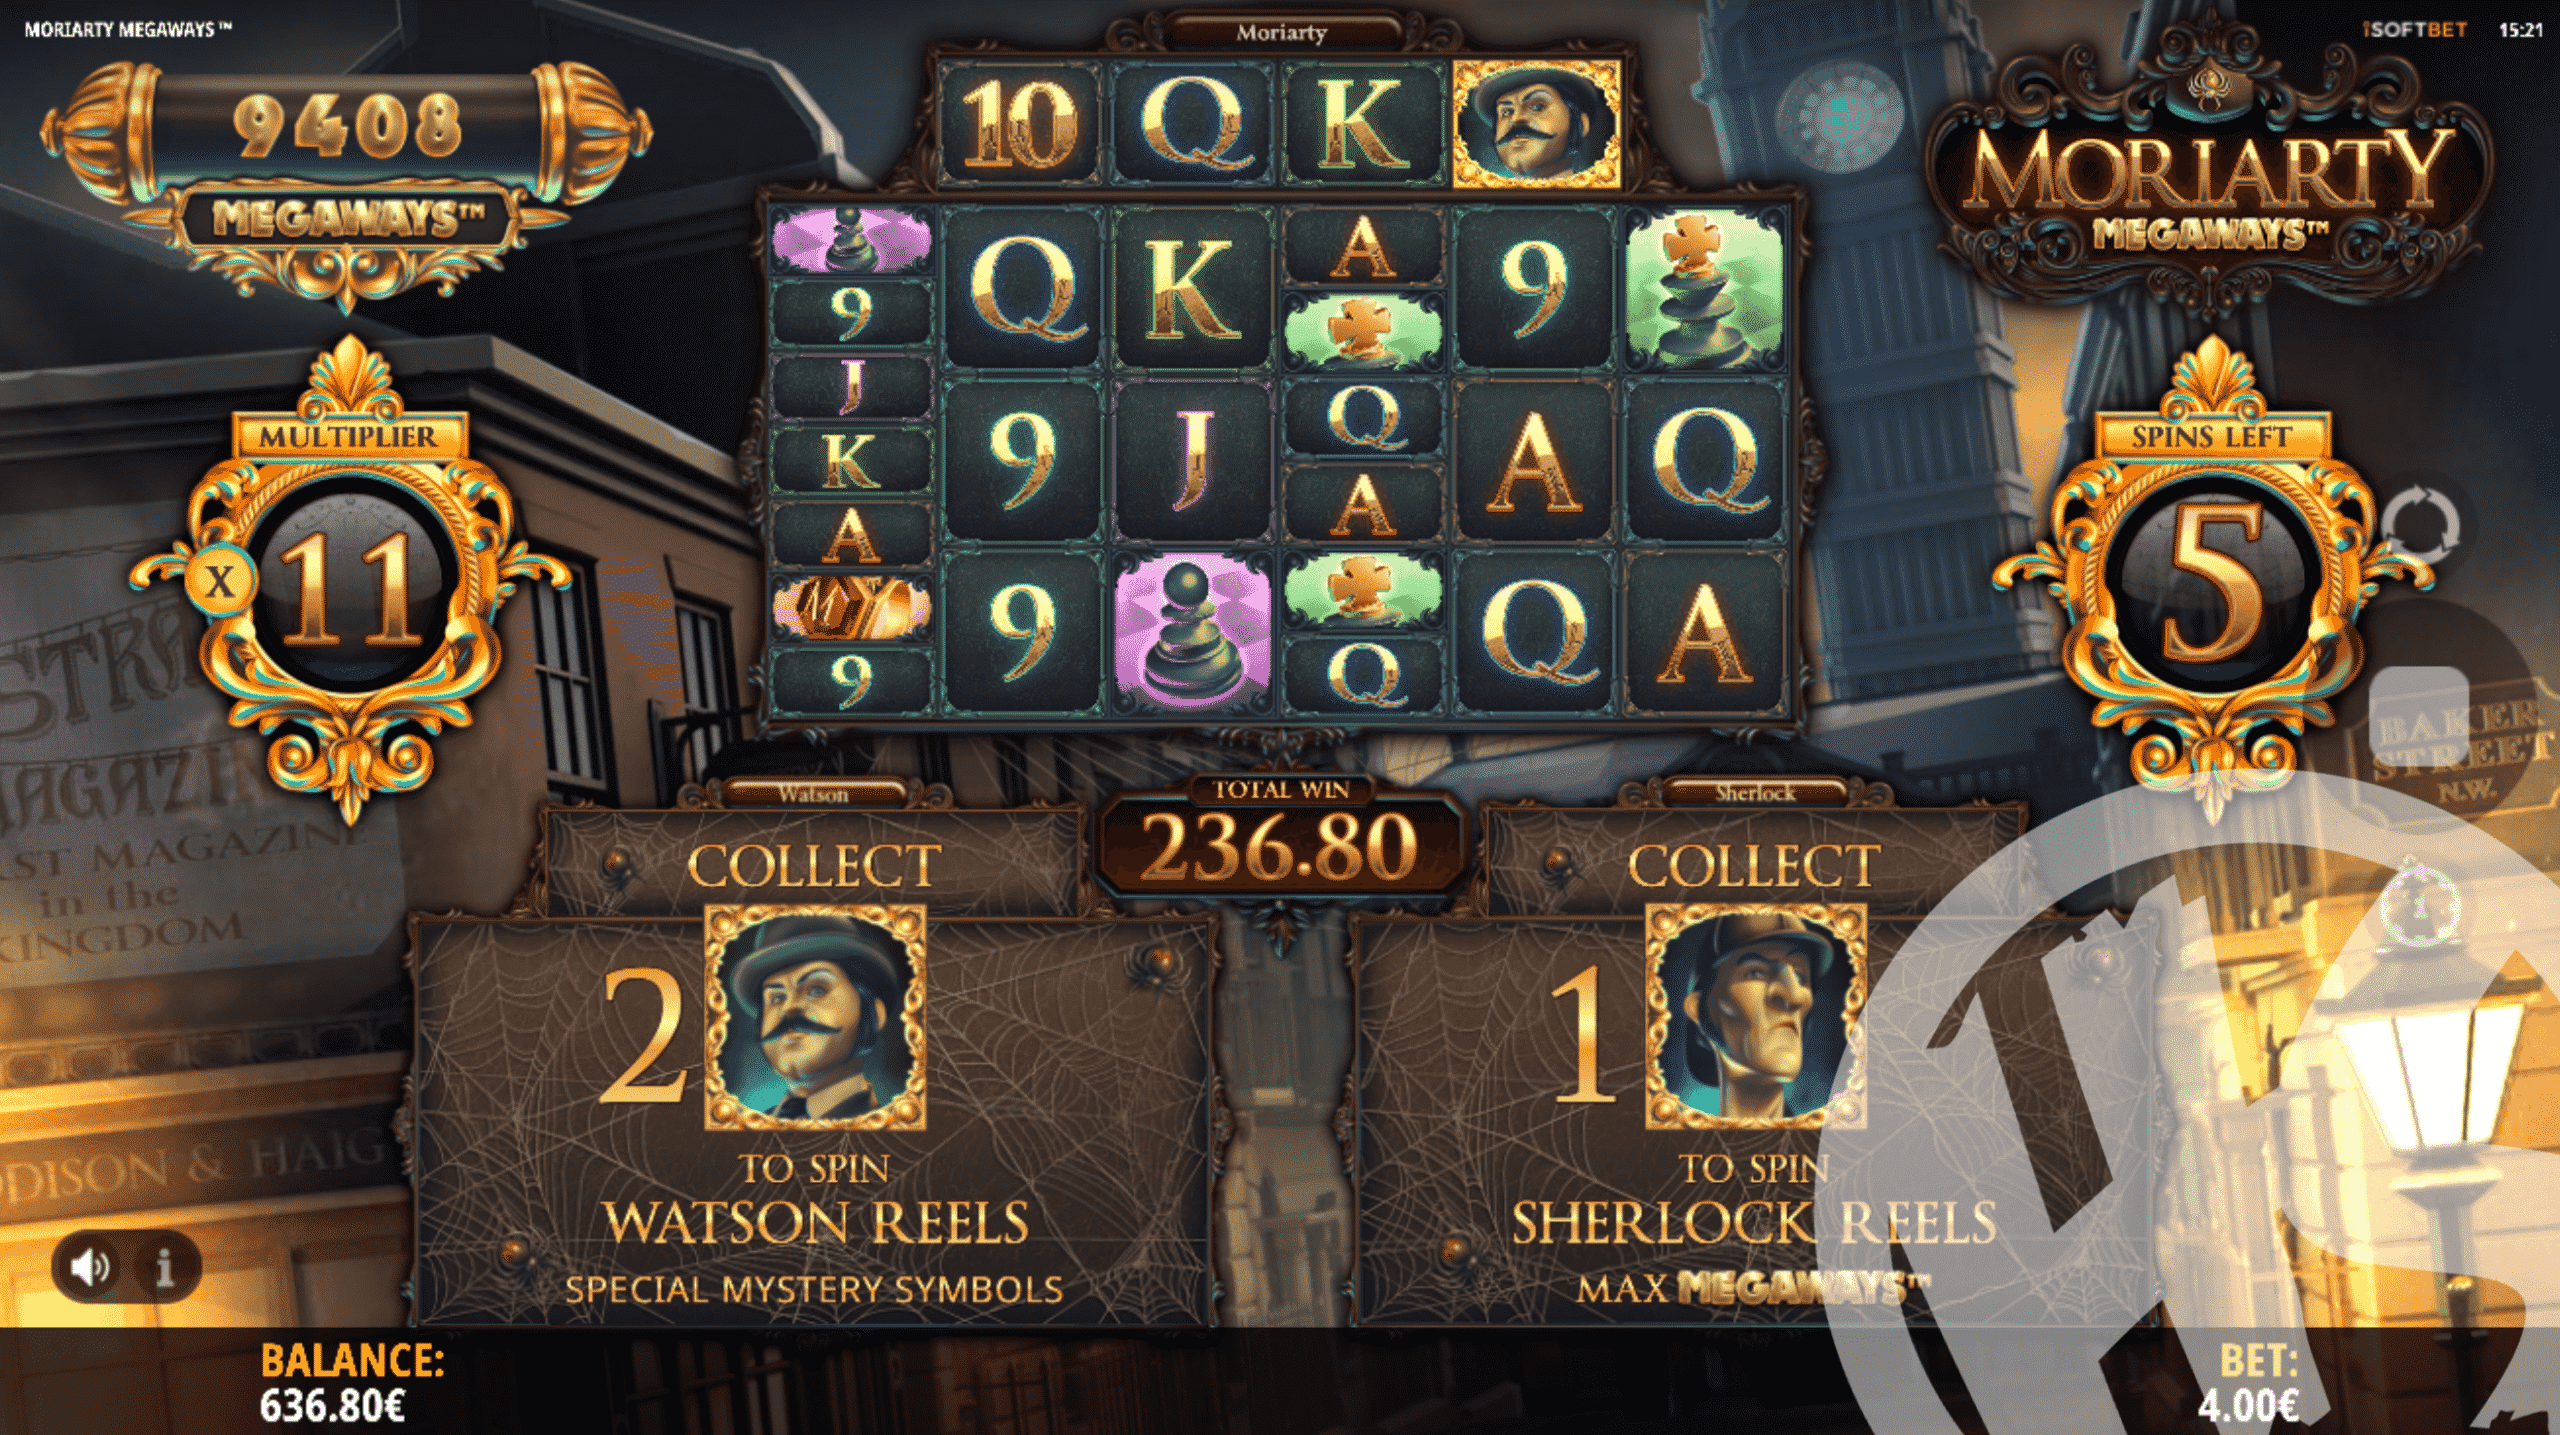 Moriarty Megaways Free Spins